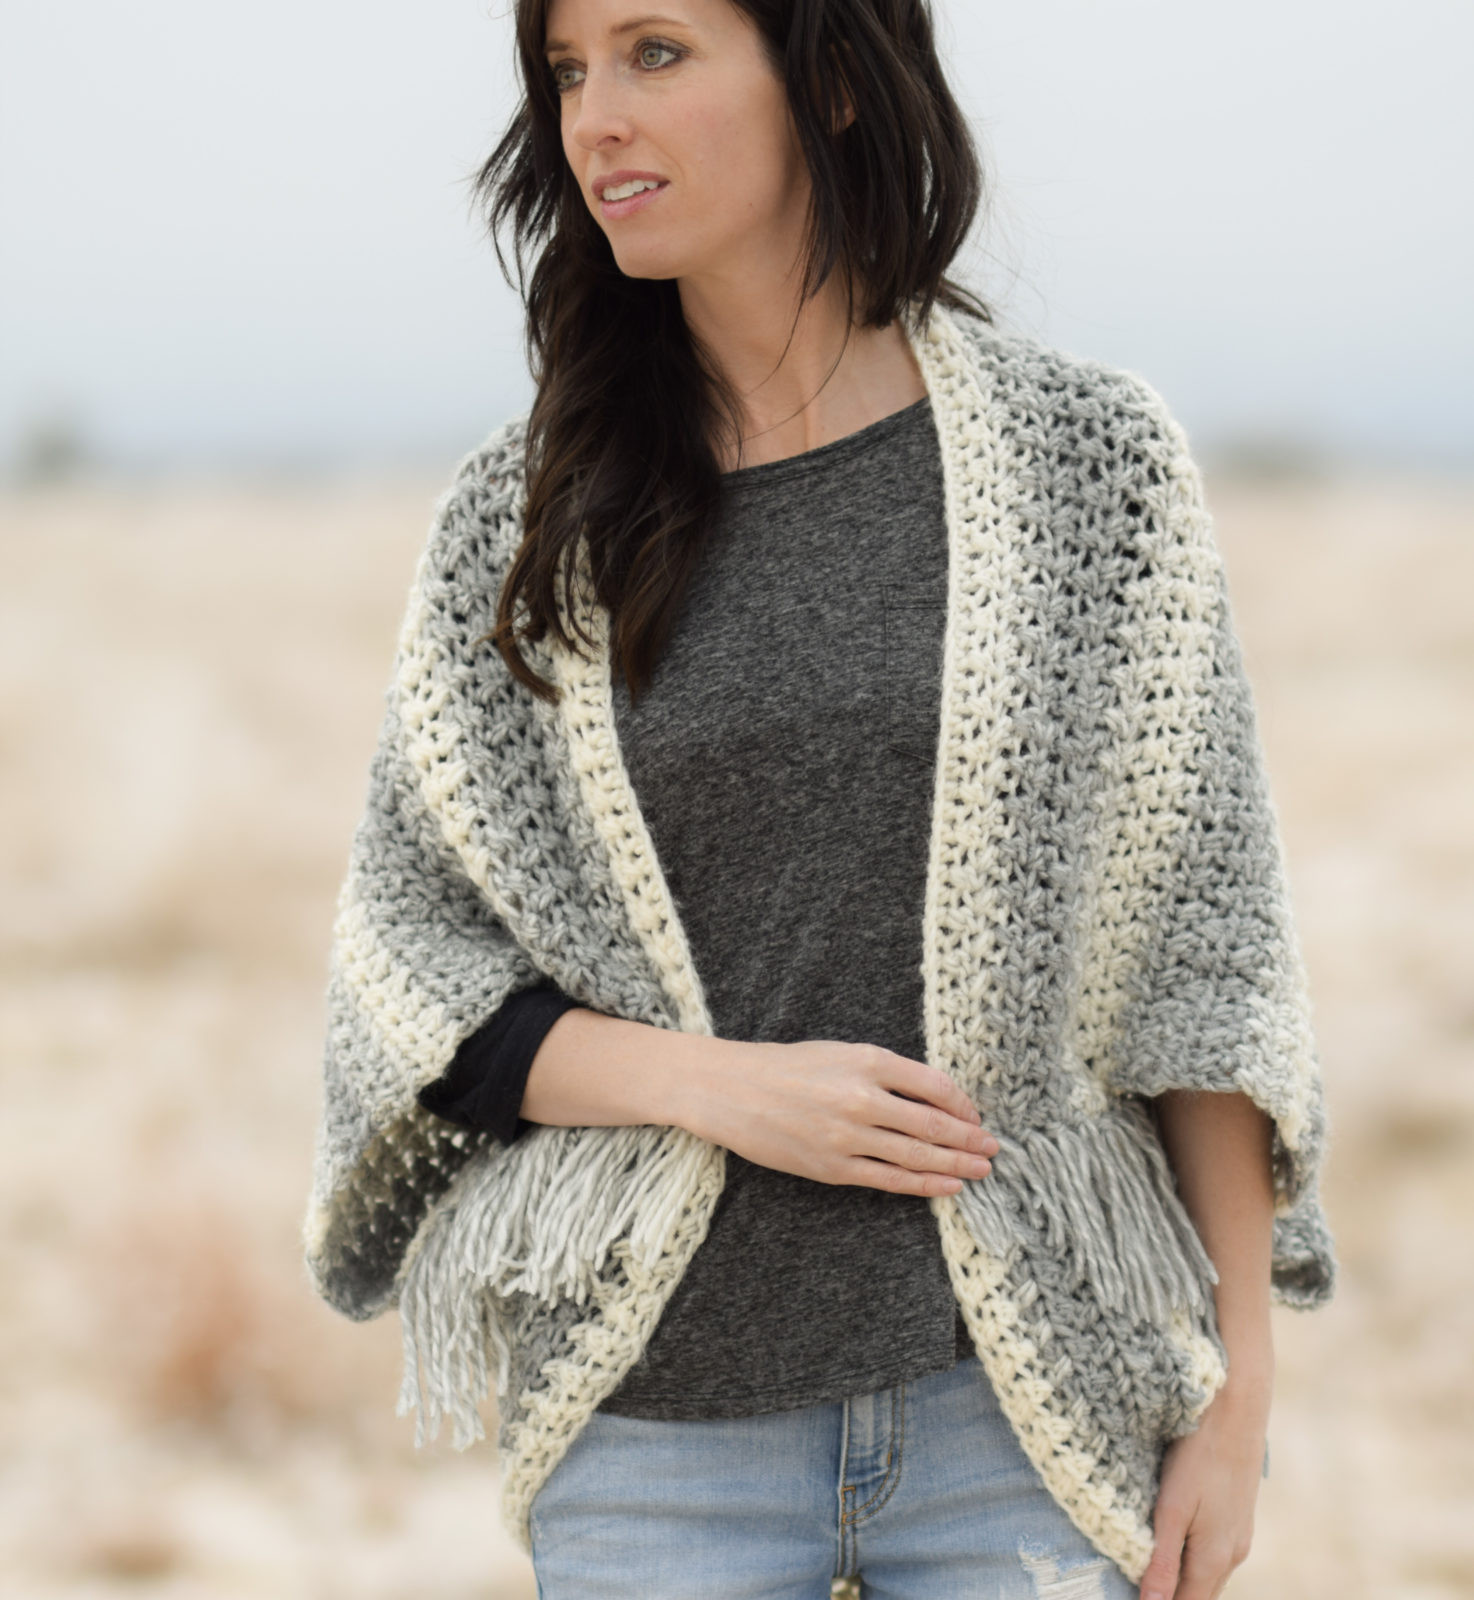 Elegant Light Frost Easy Blanket Sweater Crochet Pattern – Mama In Easy Crochet Sweater Pattern Of Elegant Telluride Easy Knit Kimono Pattern – Mama In A Stitch Easy Crochet Sweater Pattern